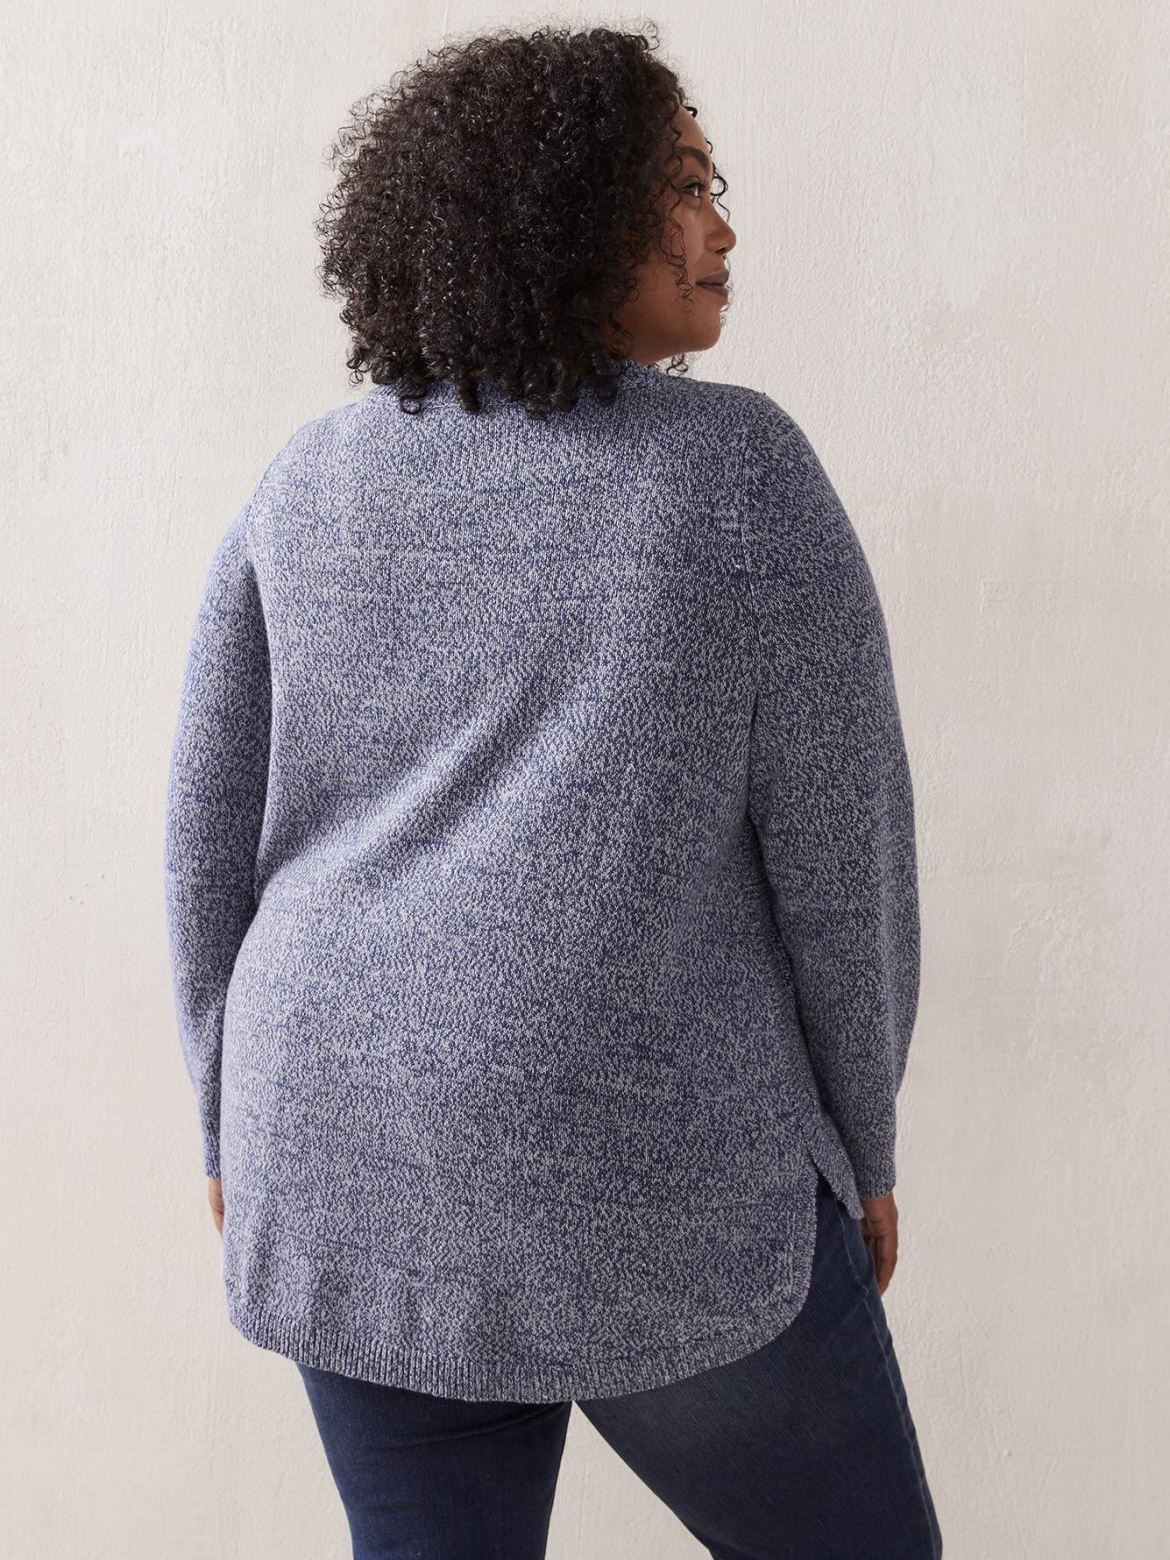 Boat Neck Sweater - In Every Story